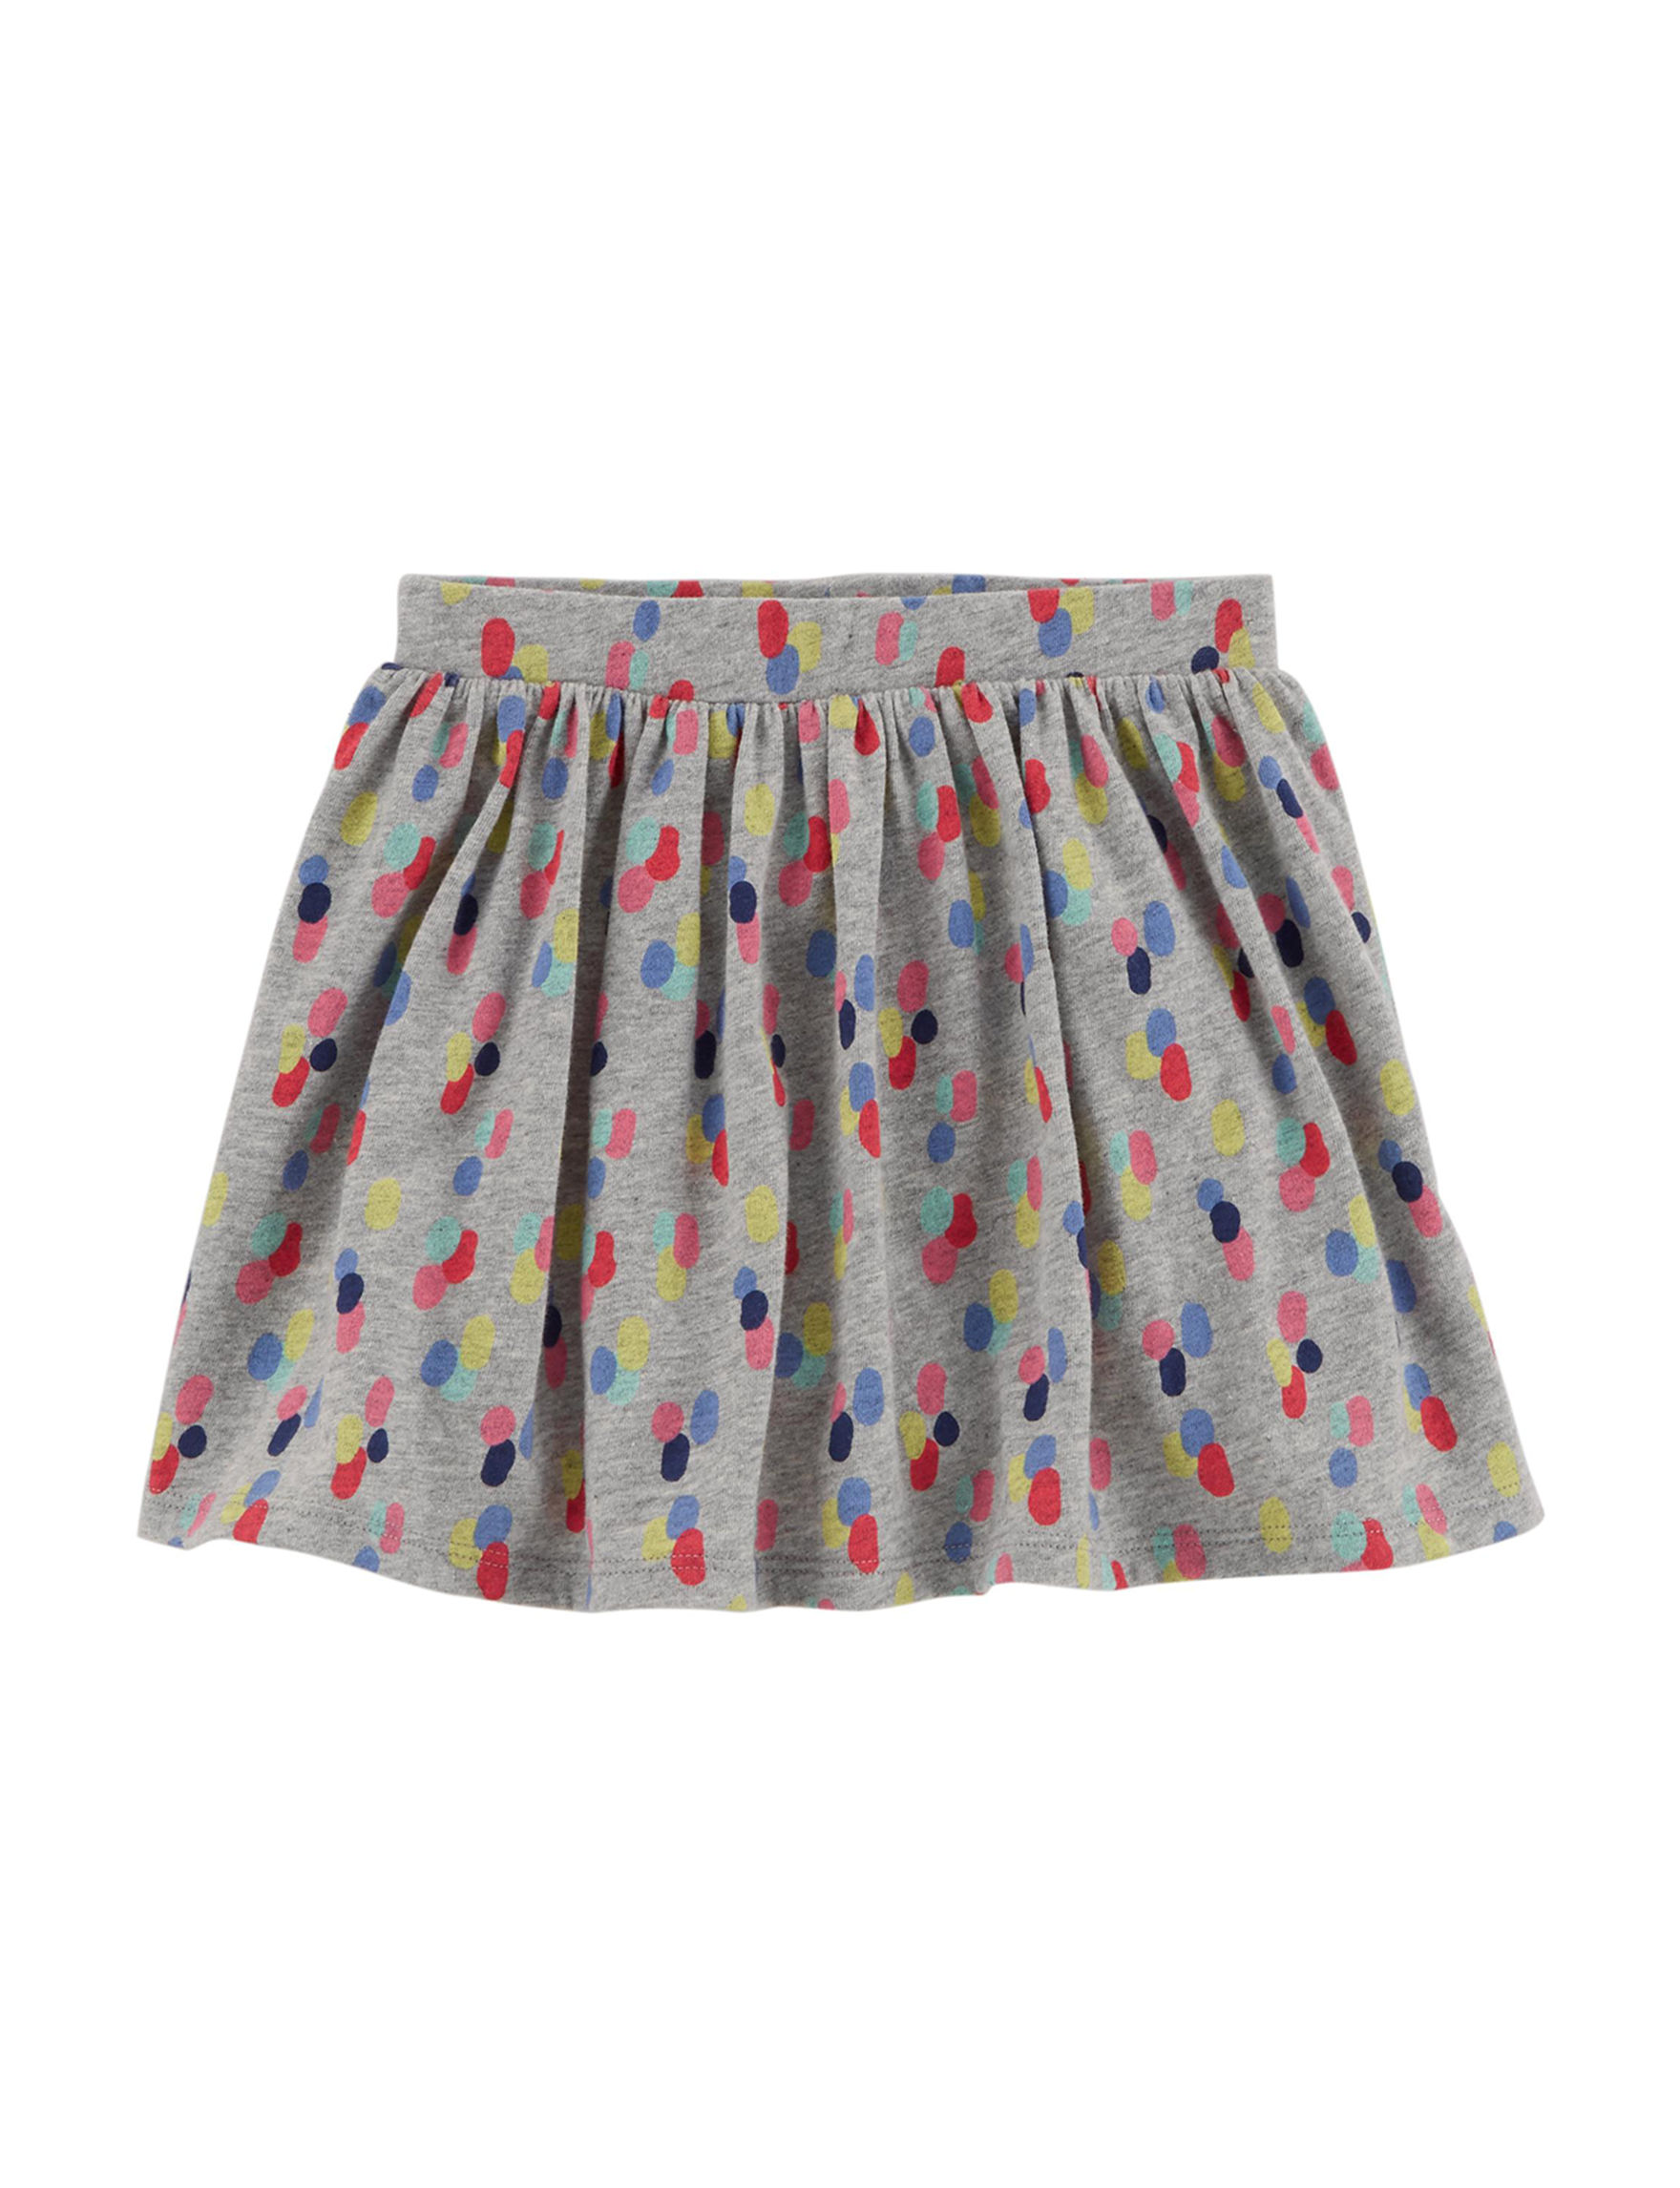 Carter's Grey Multi Skorts